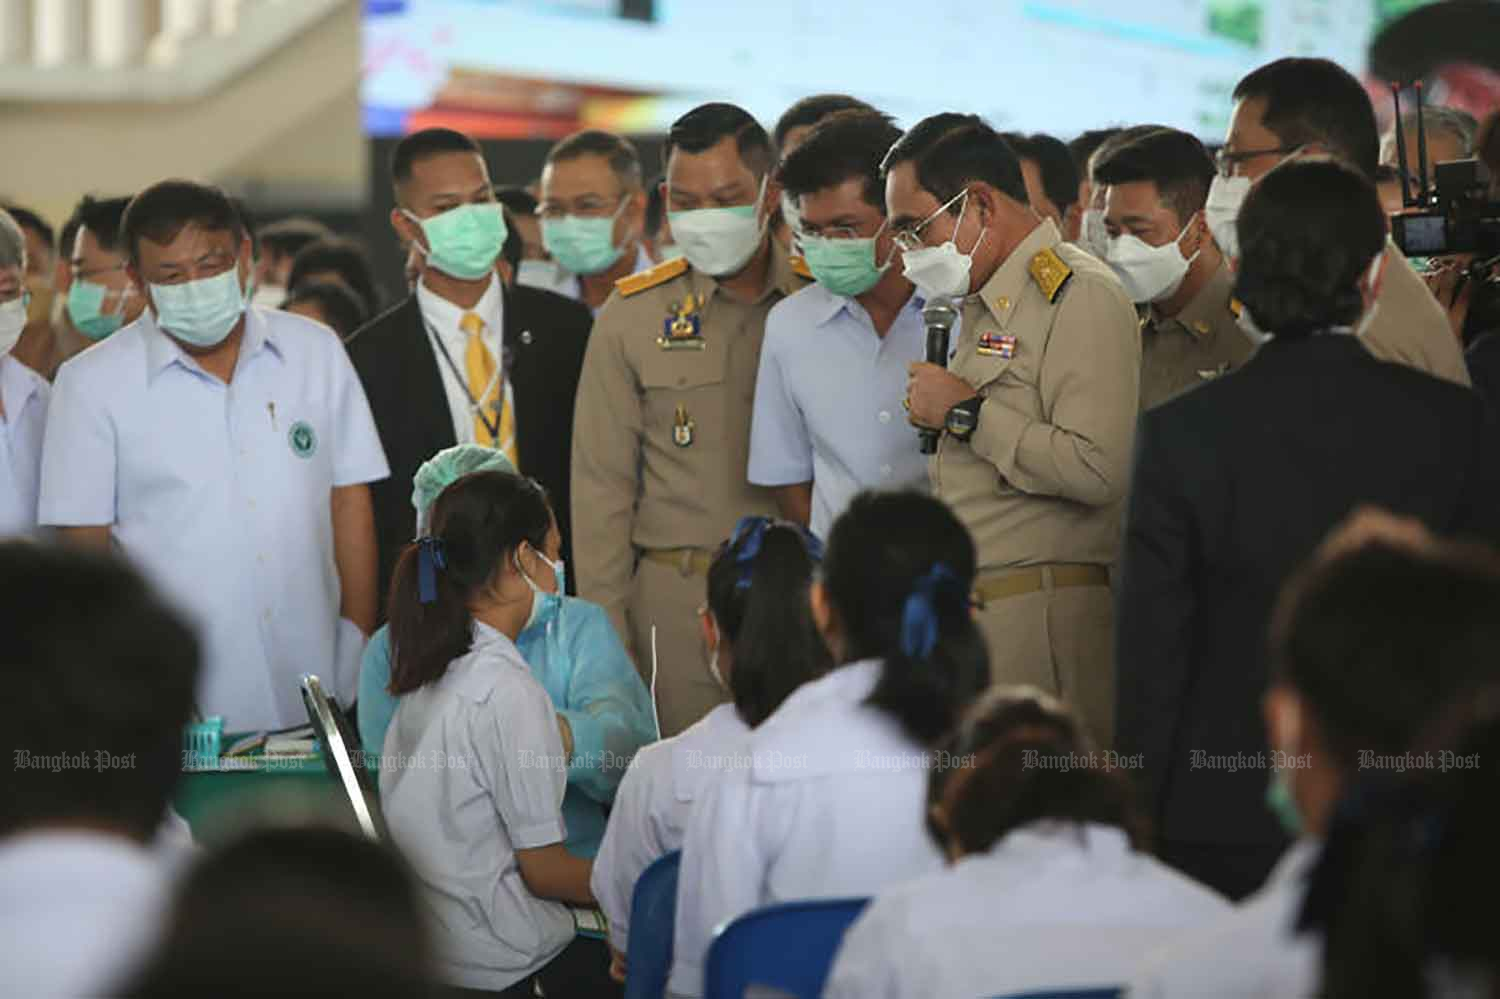 Prime Minister Prayut Chan-o-cha speaks to school children at the Pibool Upphatham School in Bangkok's Lat Phrao district where he presided over the kick-off of the vaccination campaign for young people aged 12-18 on Monday. The jabs are offered so on-site learning can resume in the new term next month. (Photo: Varuth Hirunyatheb)